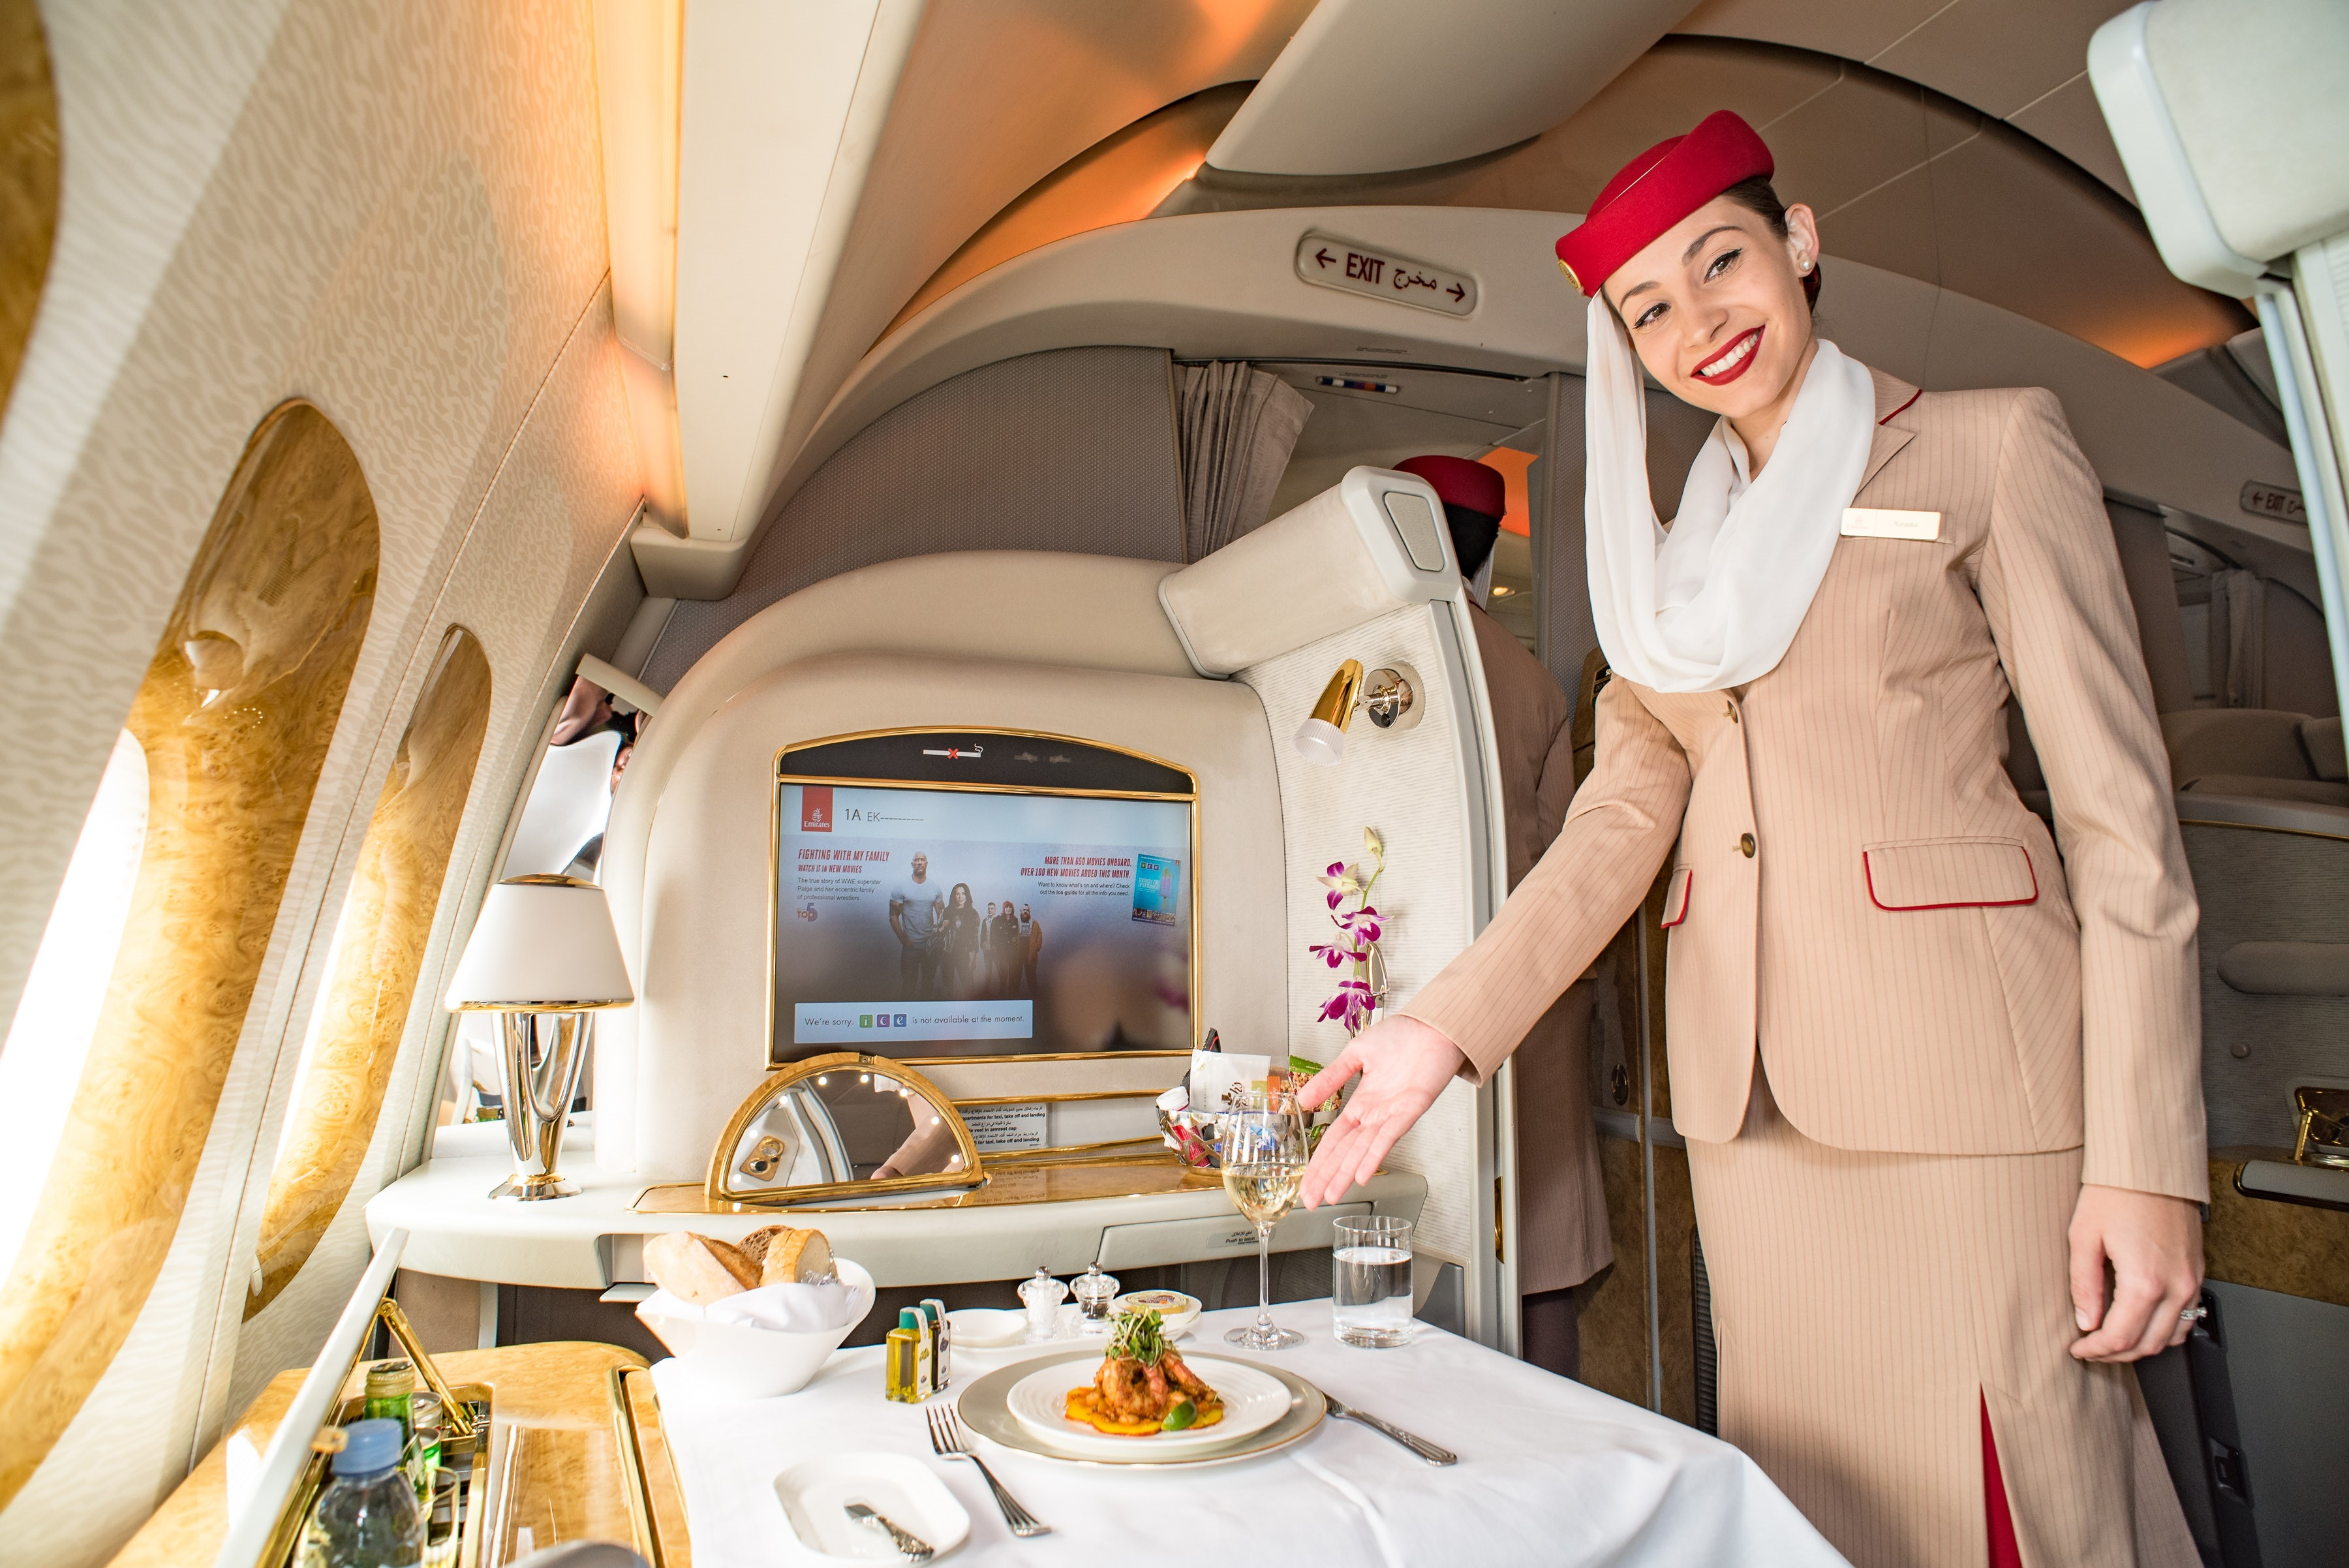 Emirates Passenger Self-Upgrades to First Class, Assaults and Sexually Harasses Flight Attendant